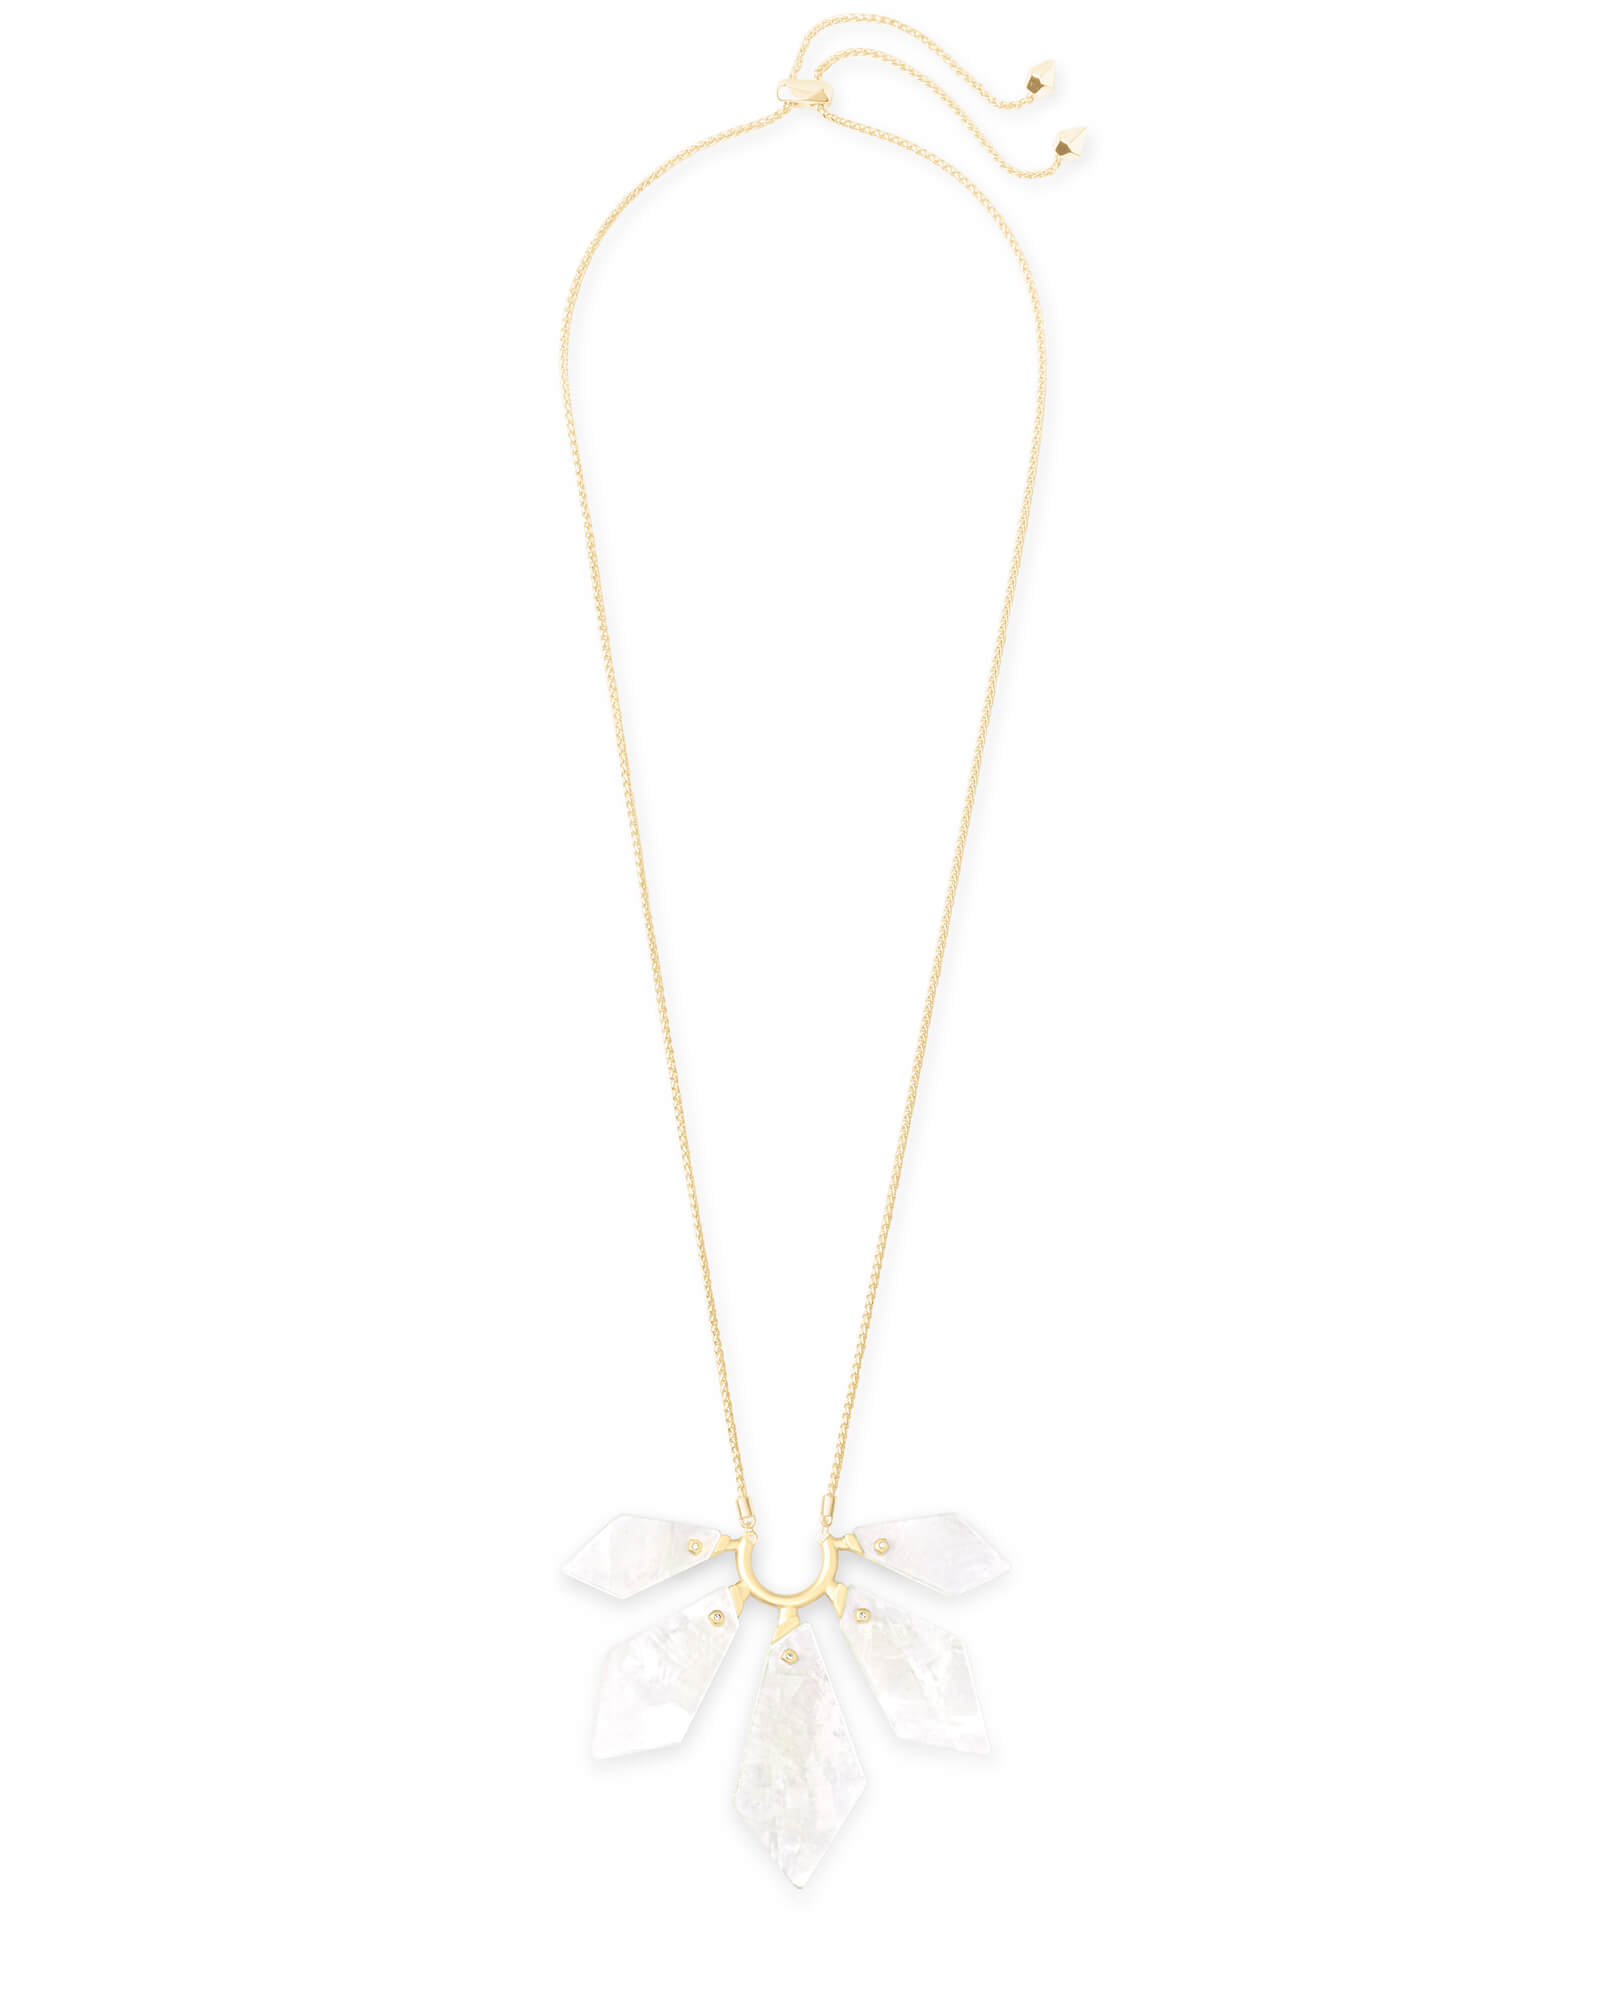 Mari Gold Long Pendant Necklace in Ivory Mother-of-Pearl